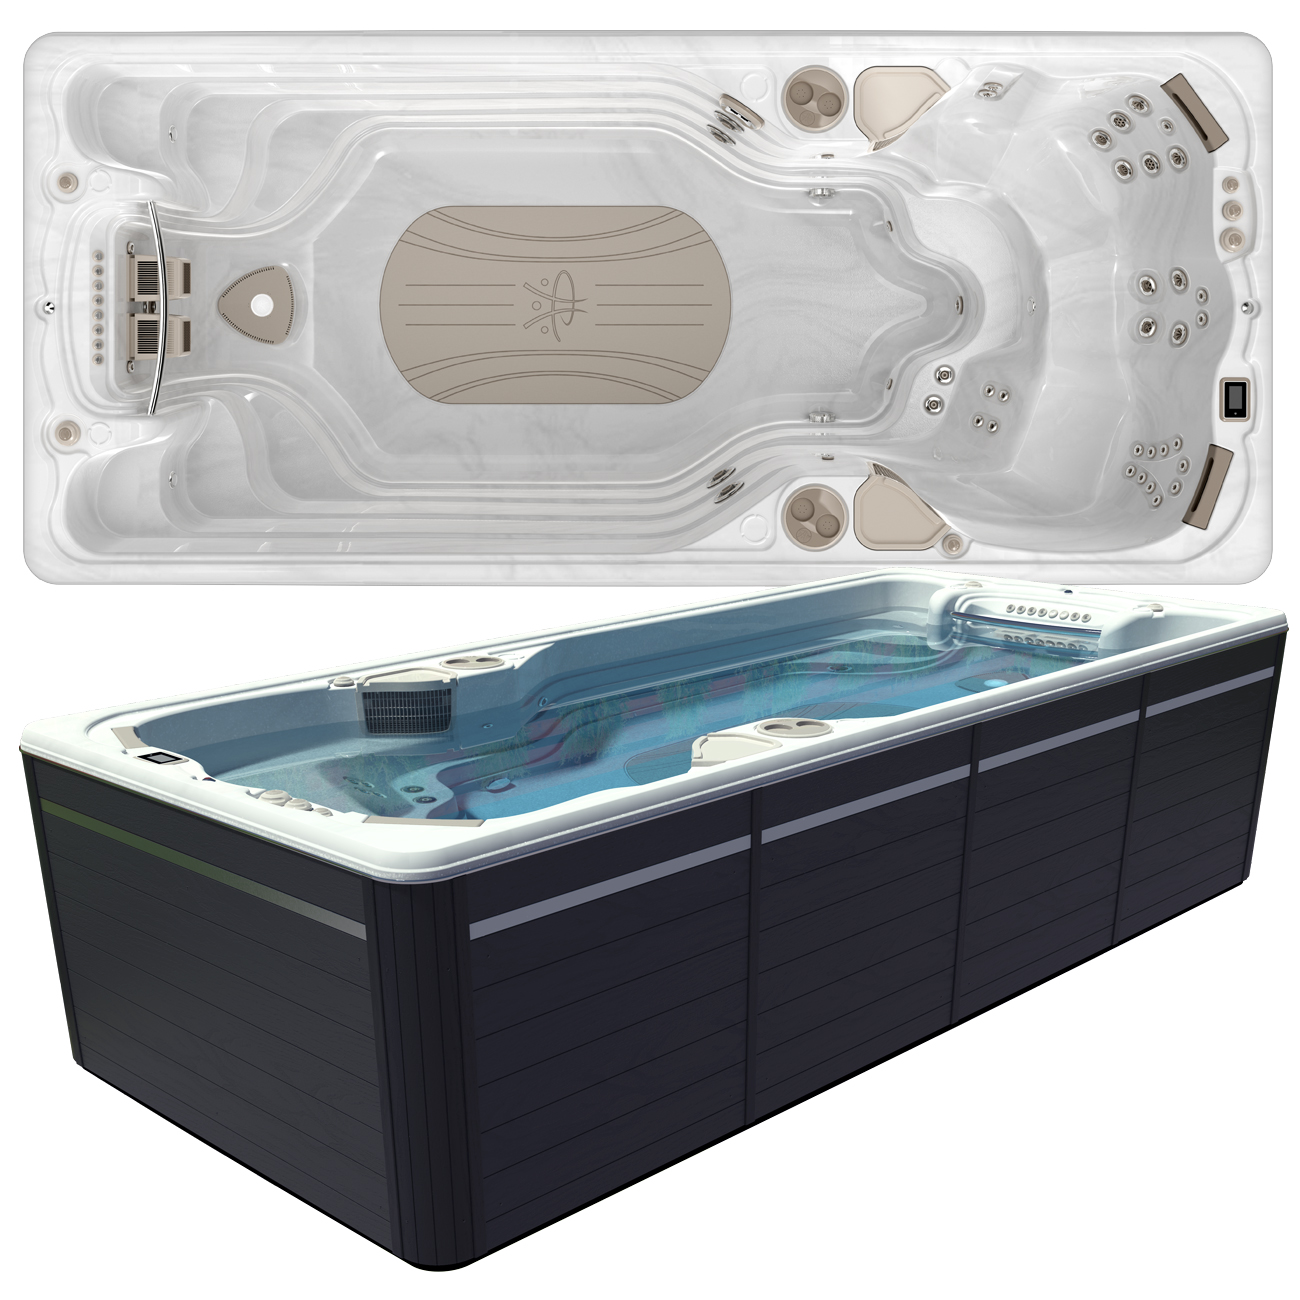 Hydropool AquaTrainer 17AX Swim Spa